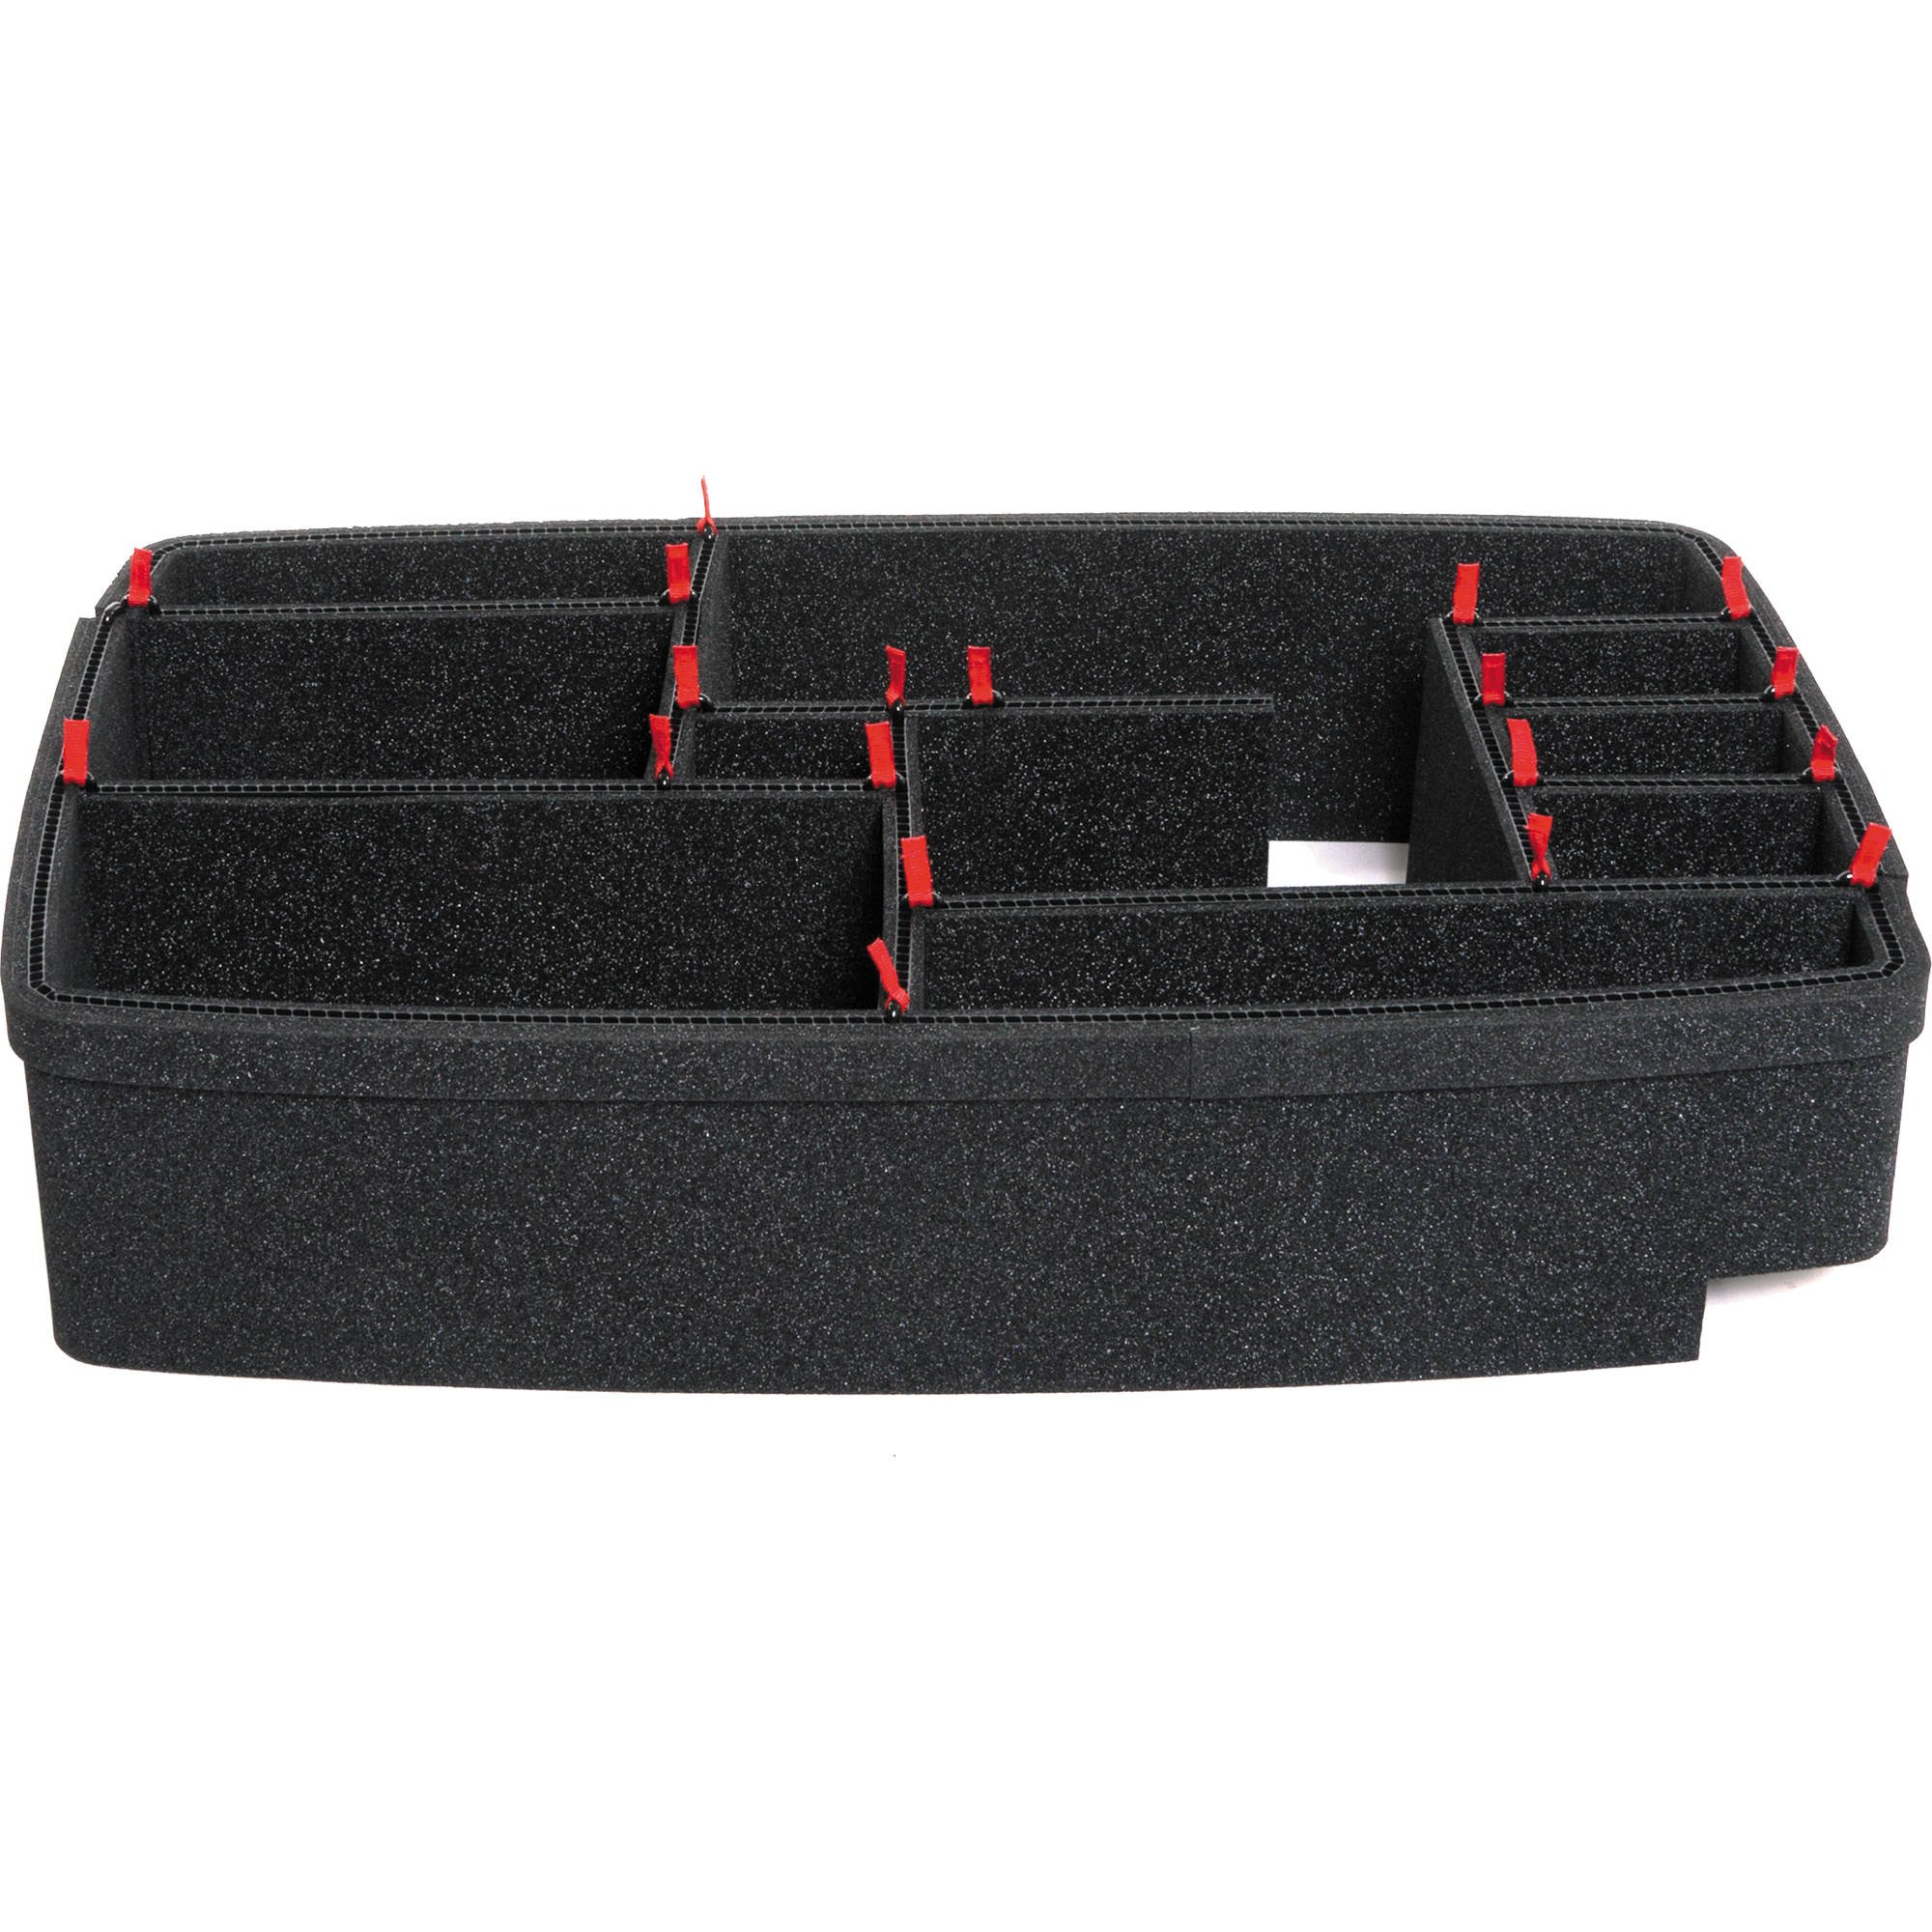 TrekPak Divider System to fit the Pelican 1510 case & 1510SC Computer Lid pouch. by CVPKG & Pelican (Image #2)